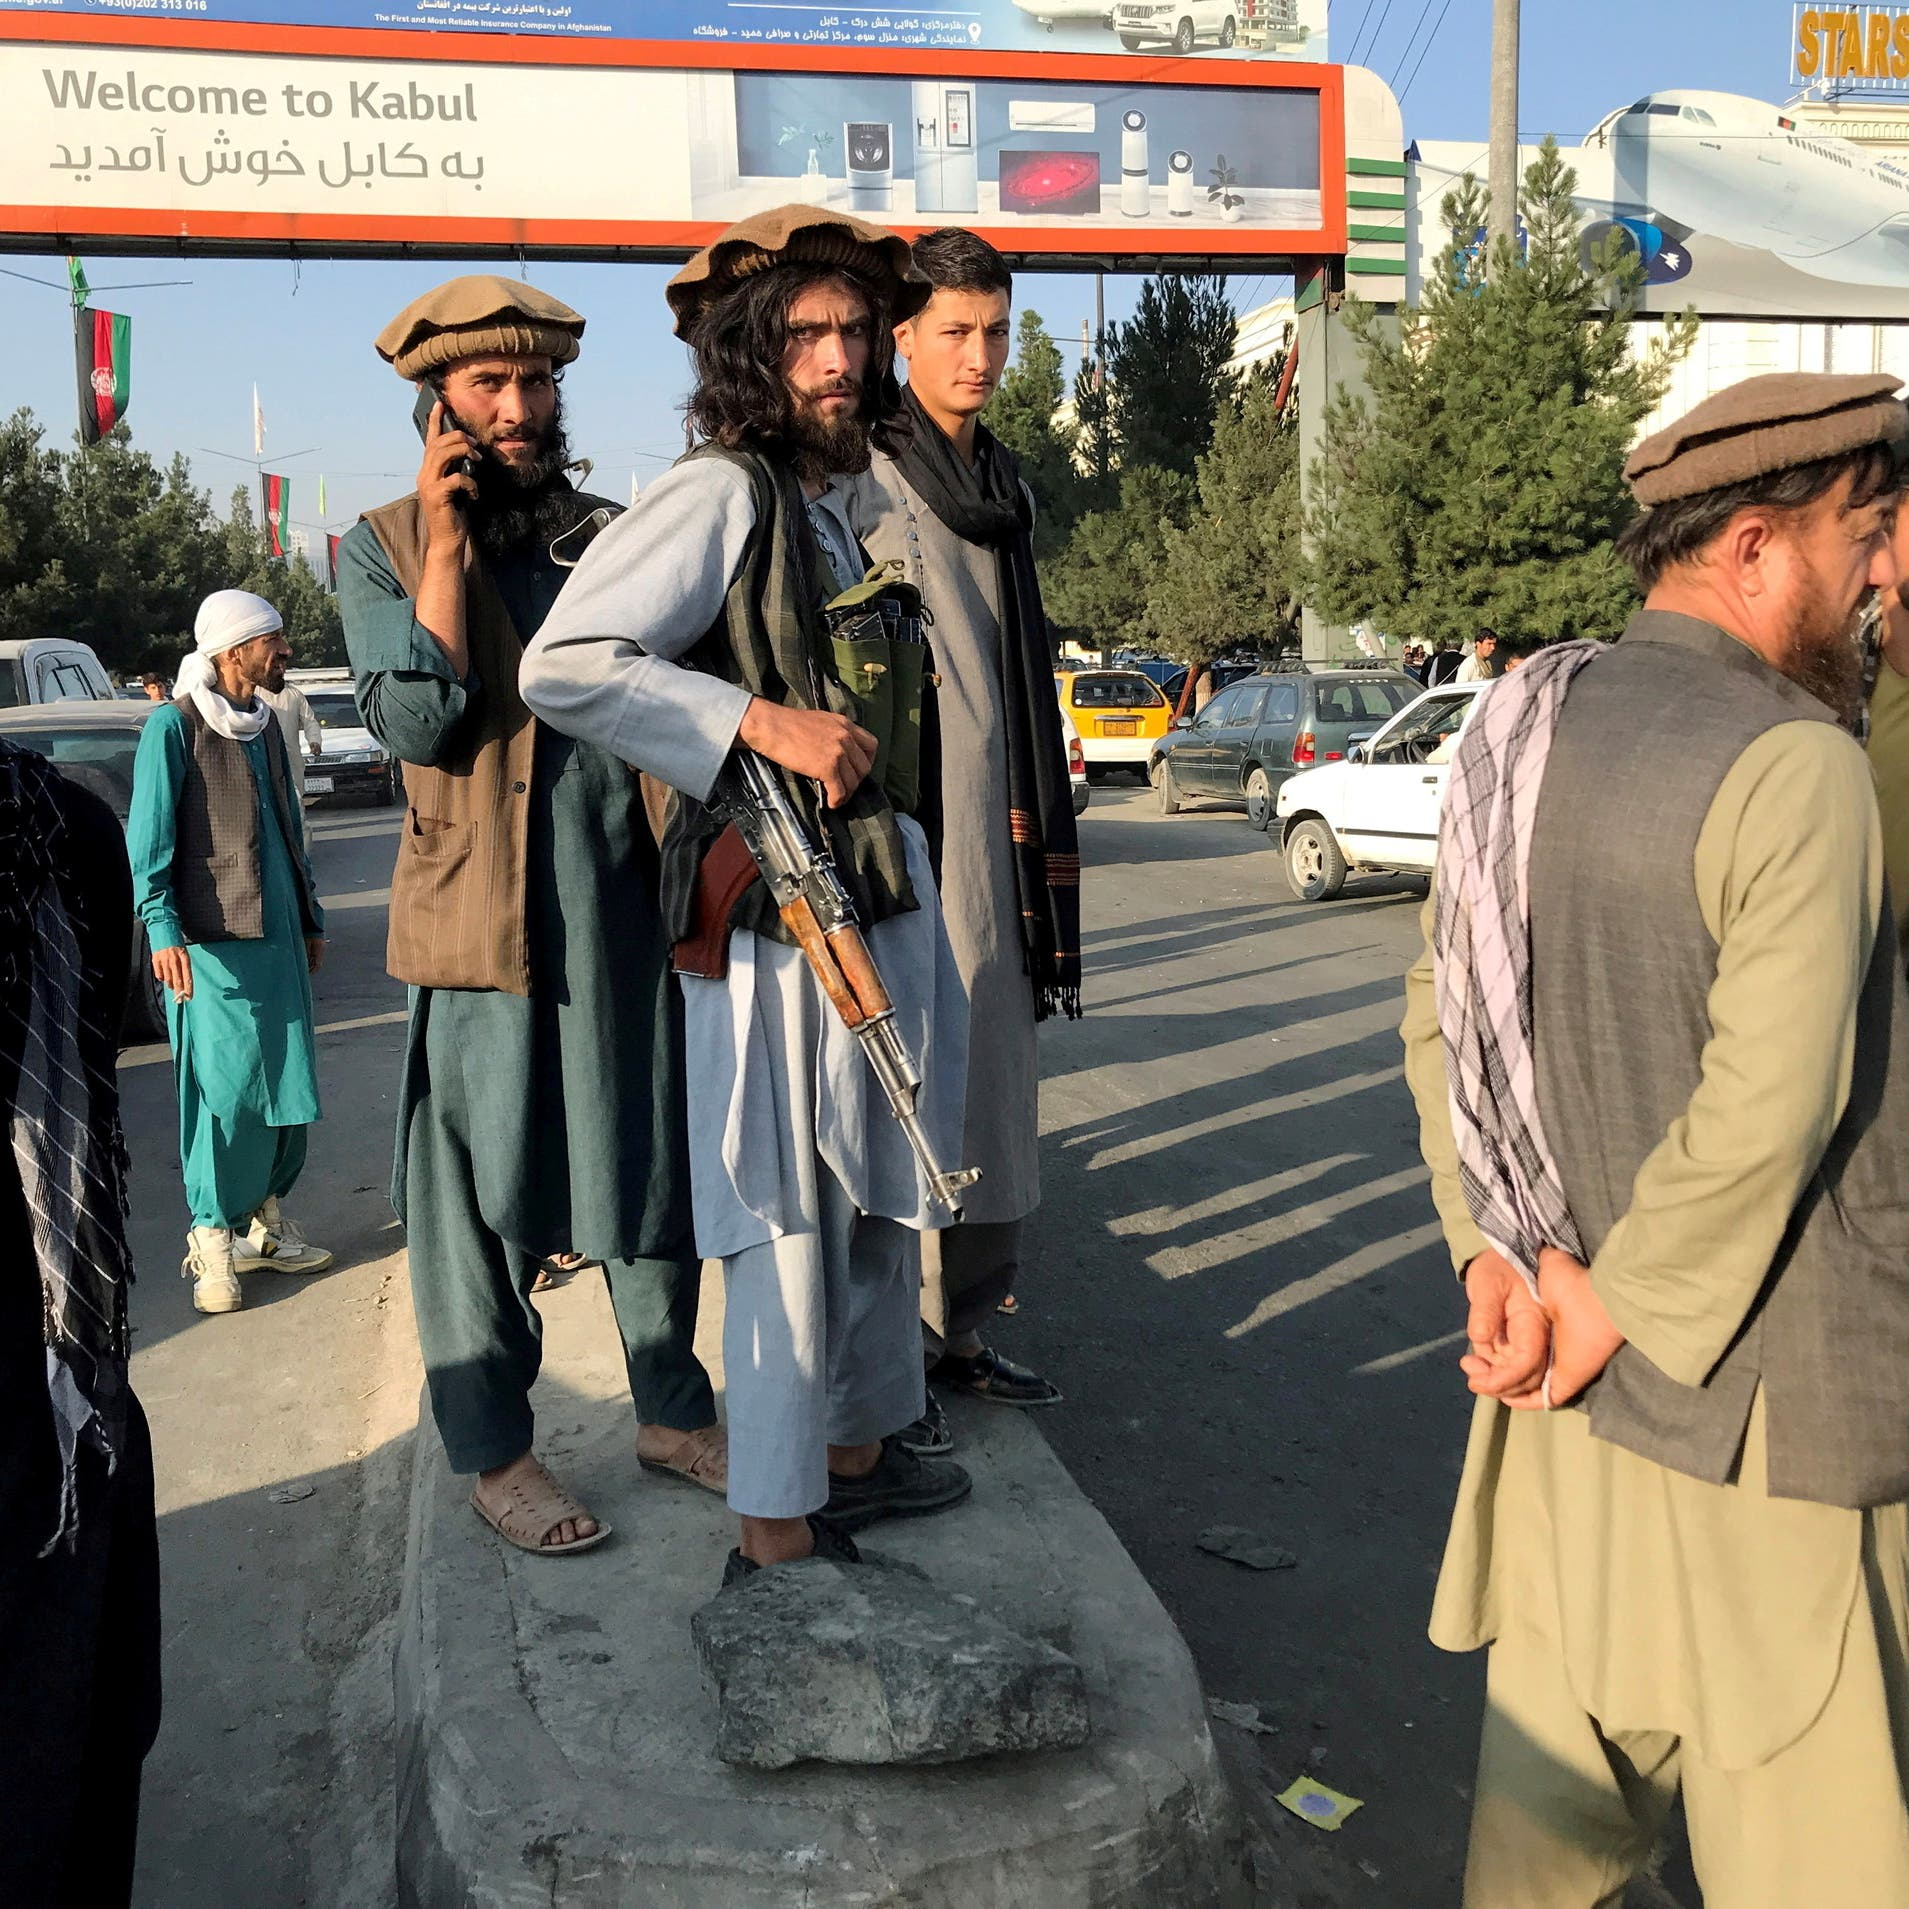 Taliban and the mysterious questions